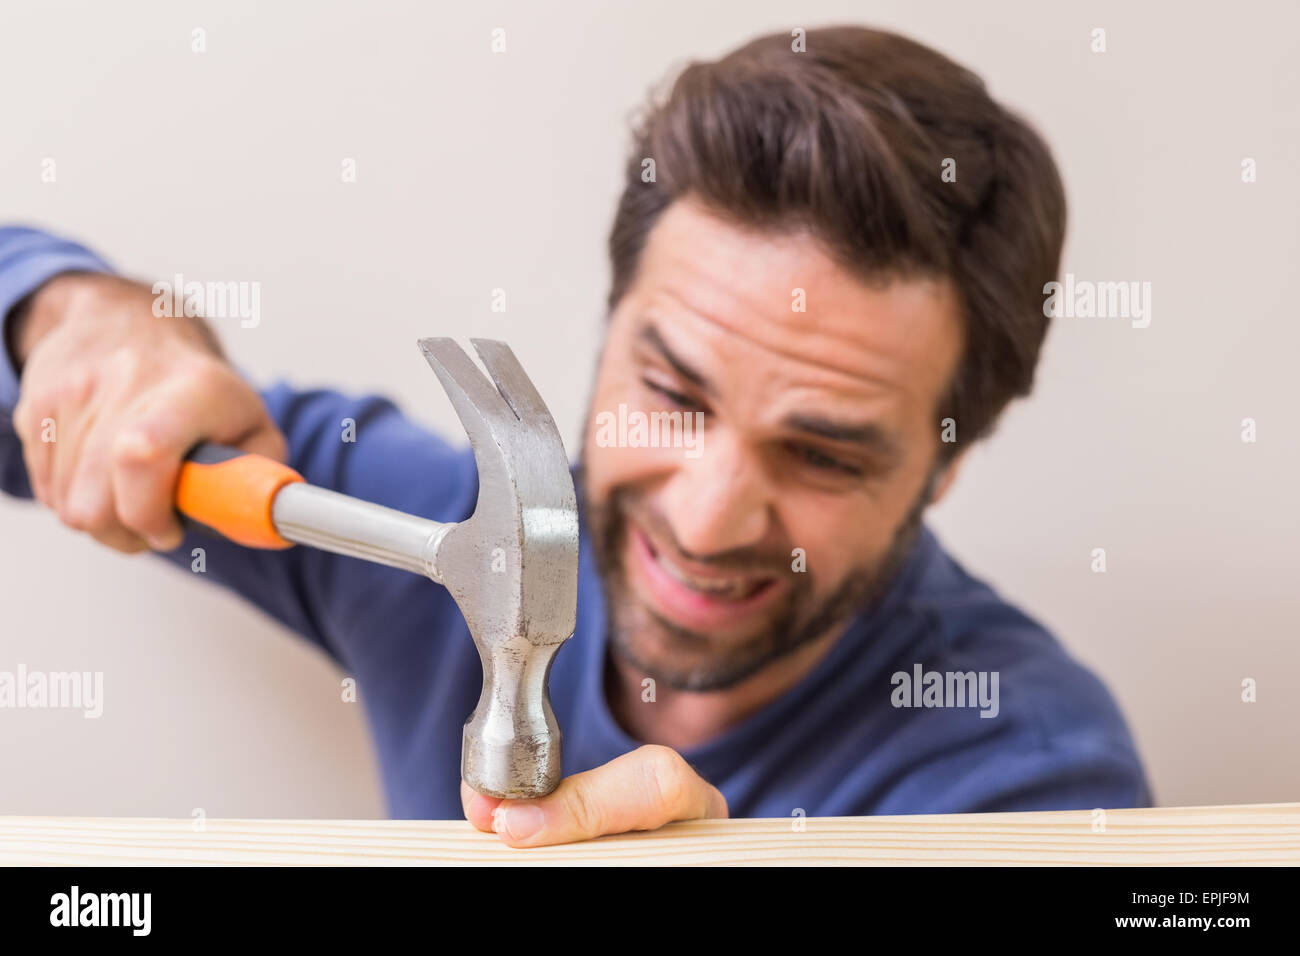 Casual man hammering his finger by accident - Stock Image